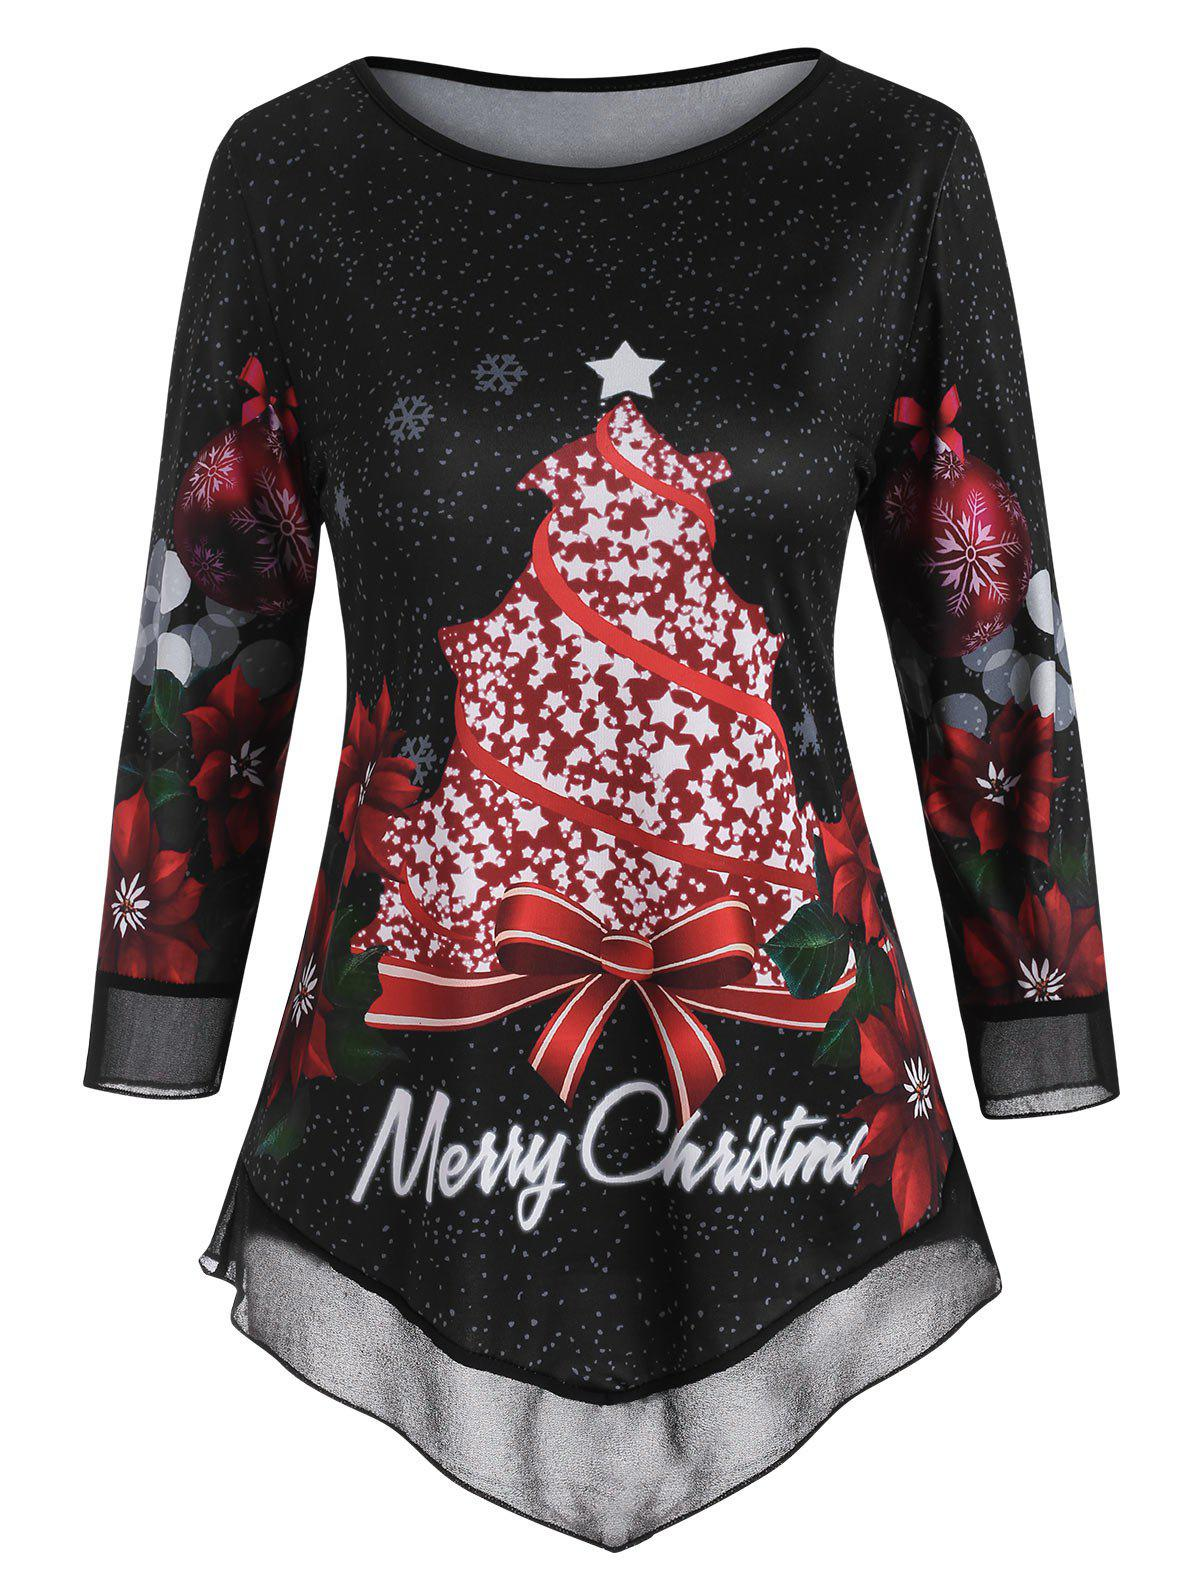 Mesh Panel Floral Snowflake Merry Christmas Top - BLACK 3XL